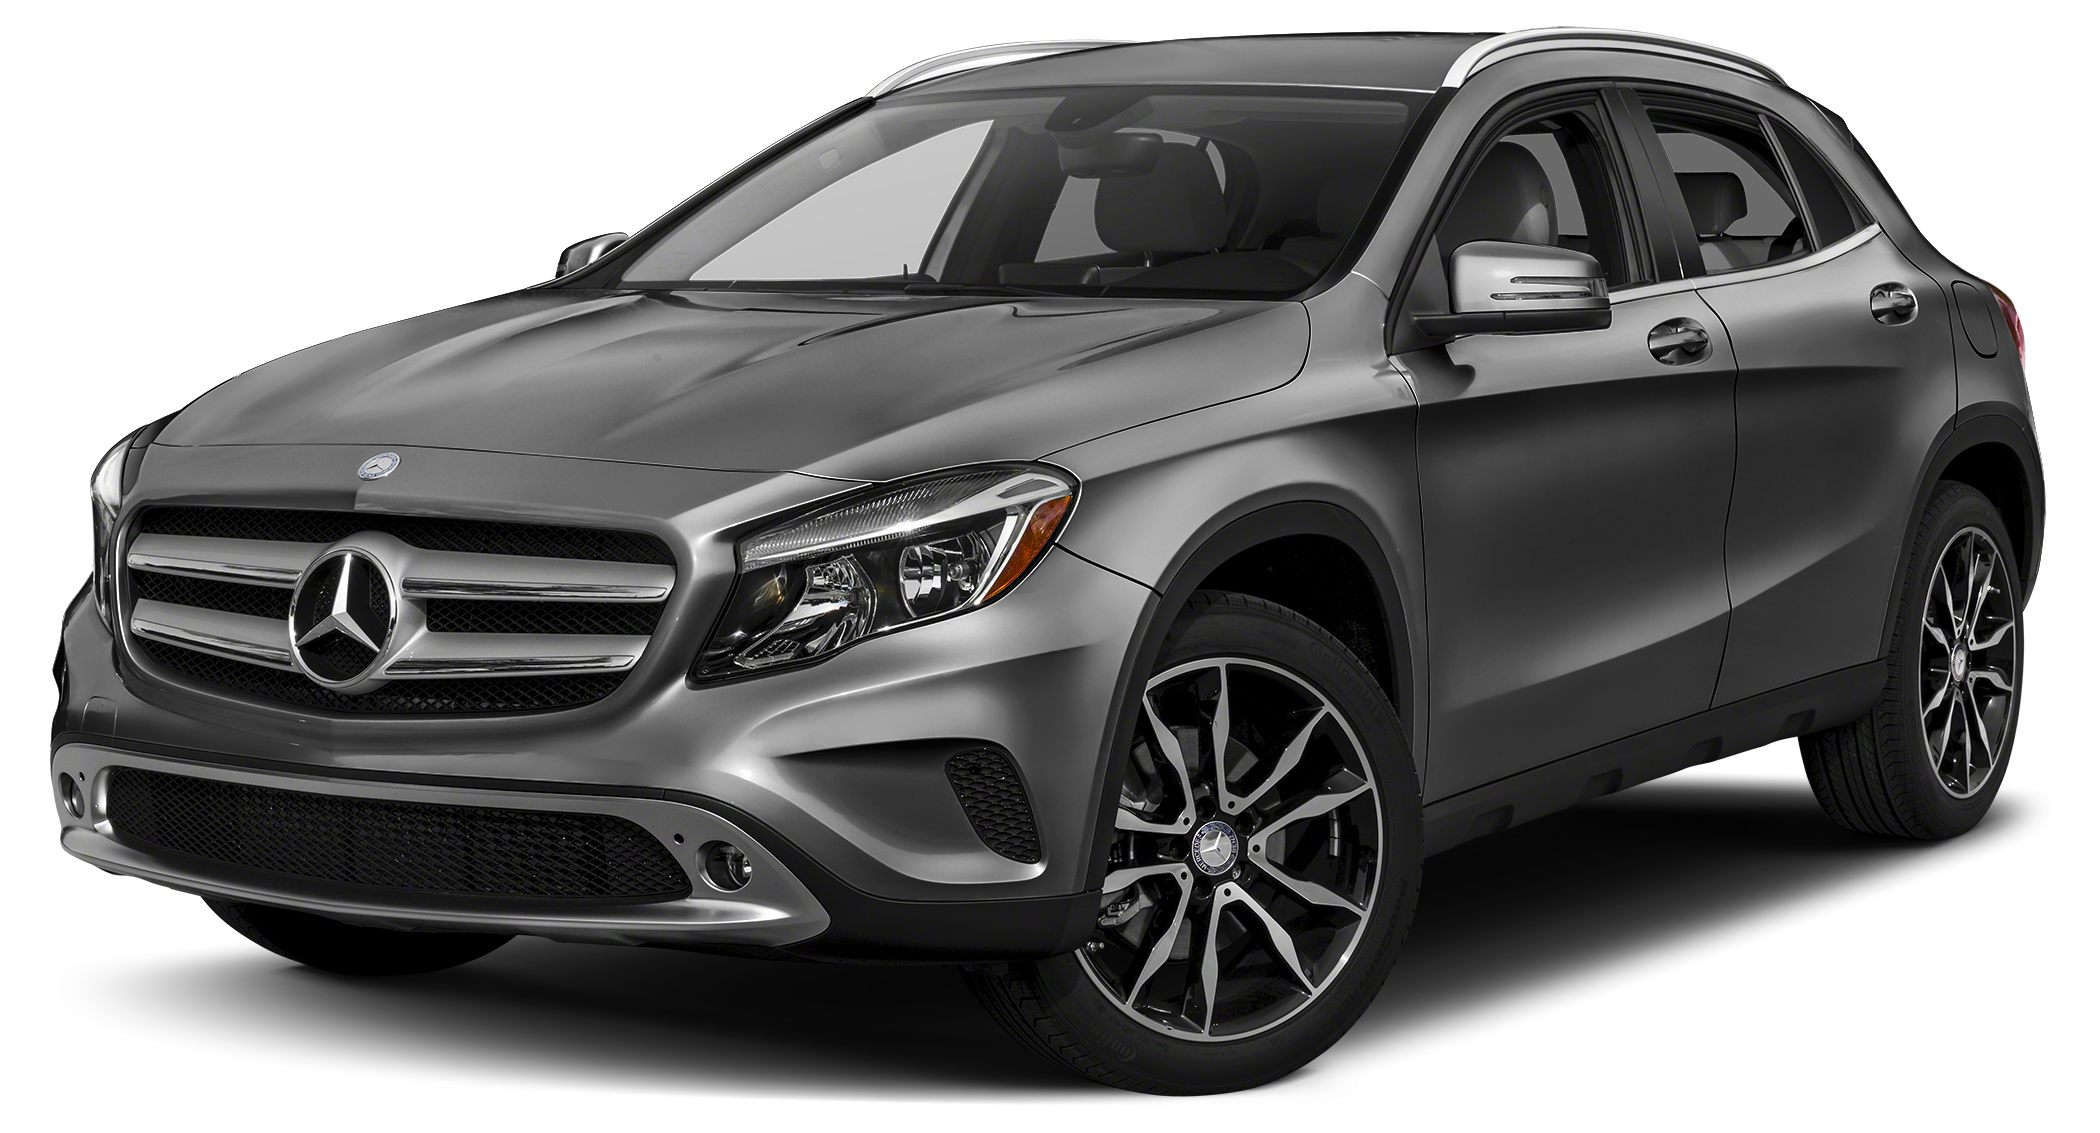 2016 MERCEDES GLA-Class GLA250 Miles 10Color Mountain Gray Metallic Stock L1284 VIN WDCTG4EB